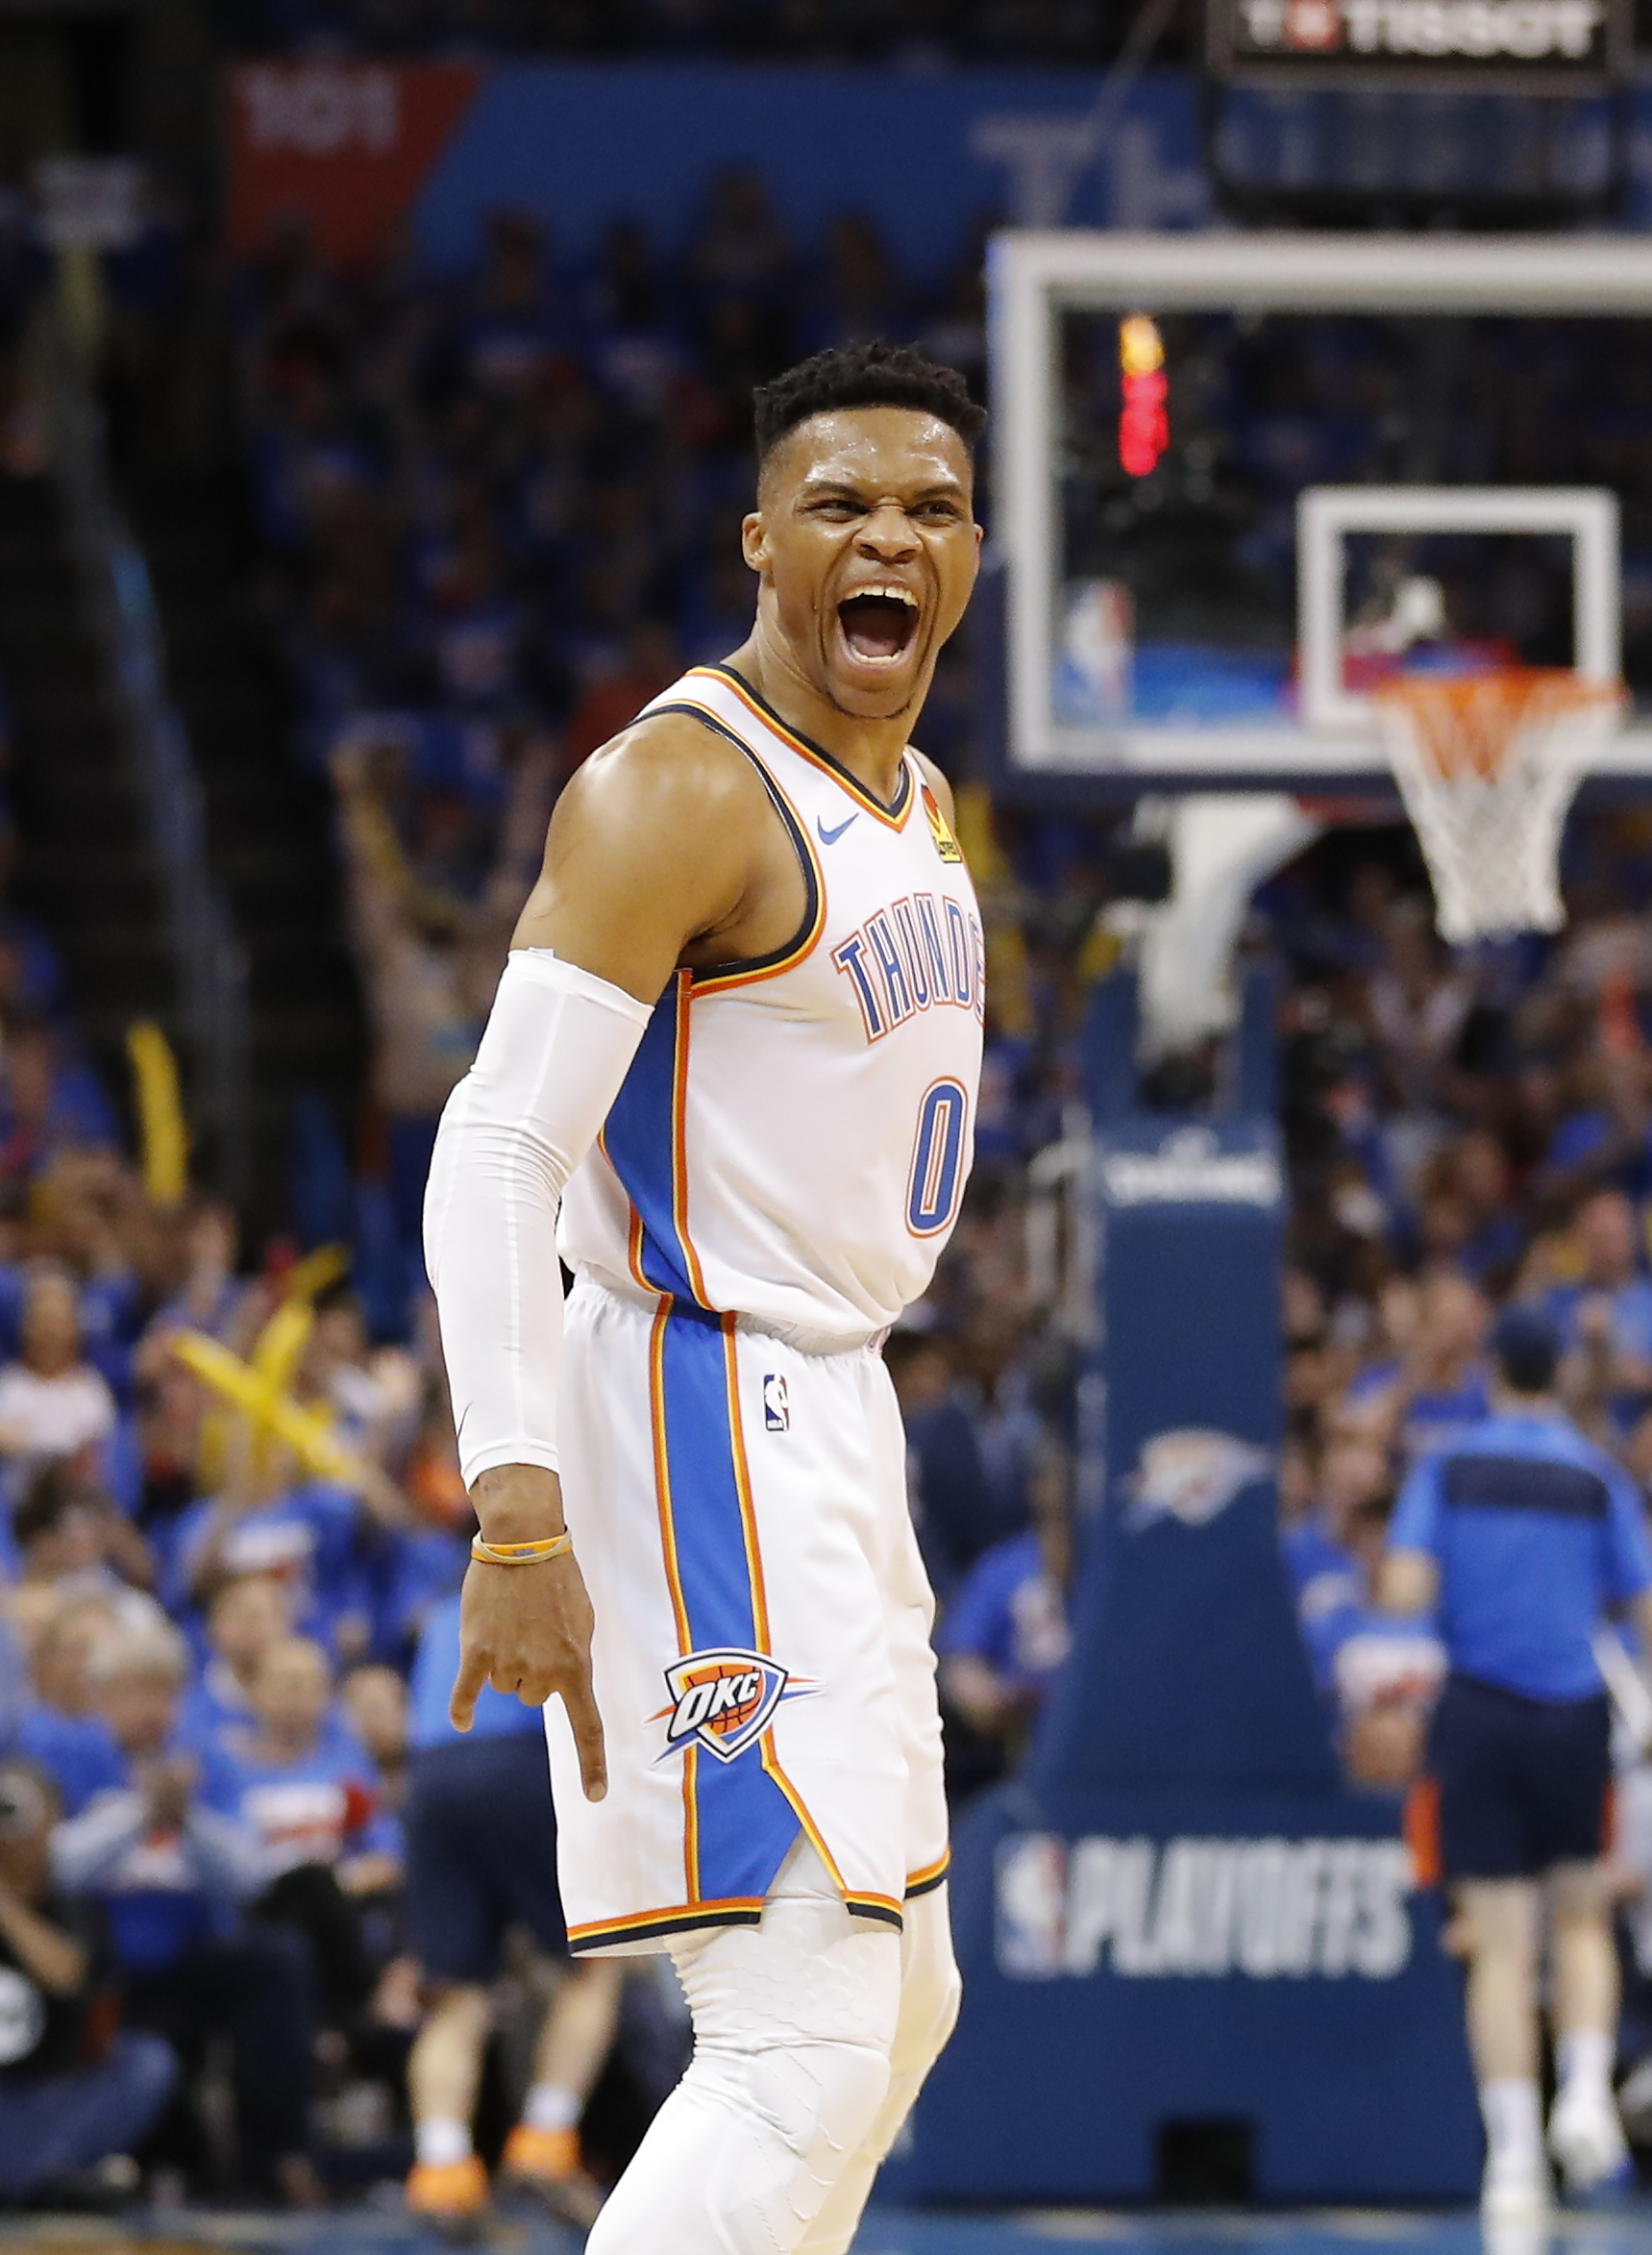 SNYDER: Press feud dings Westbrook, NBA more than reporter